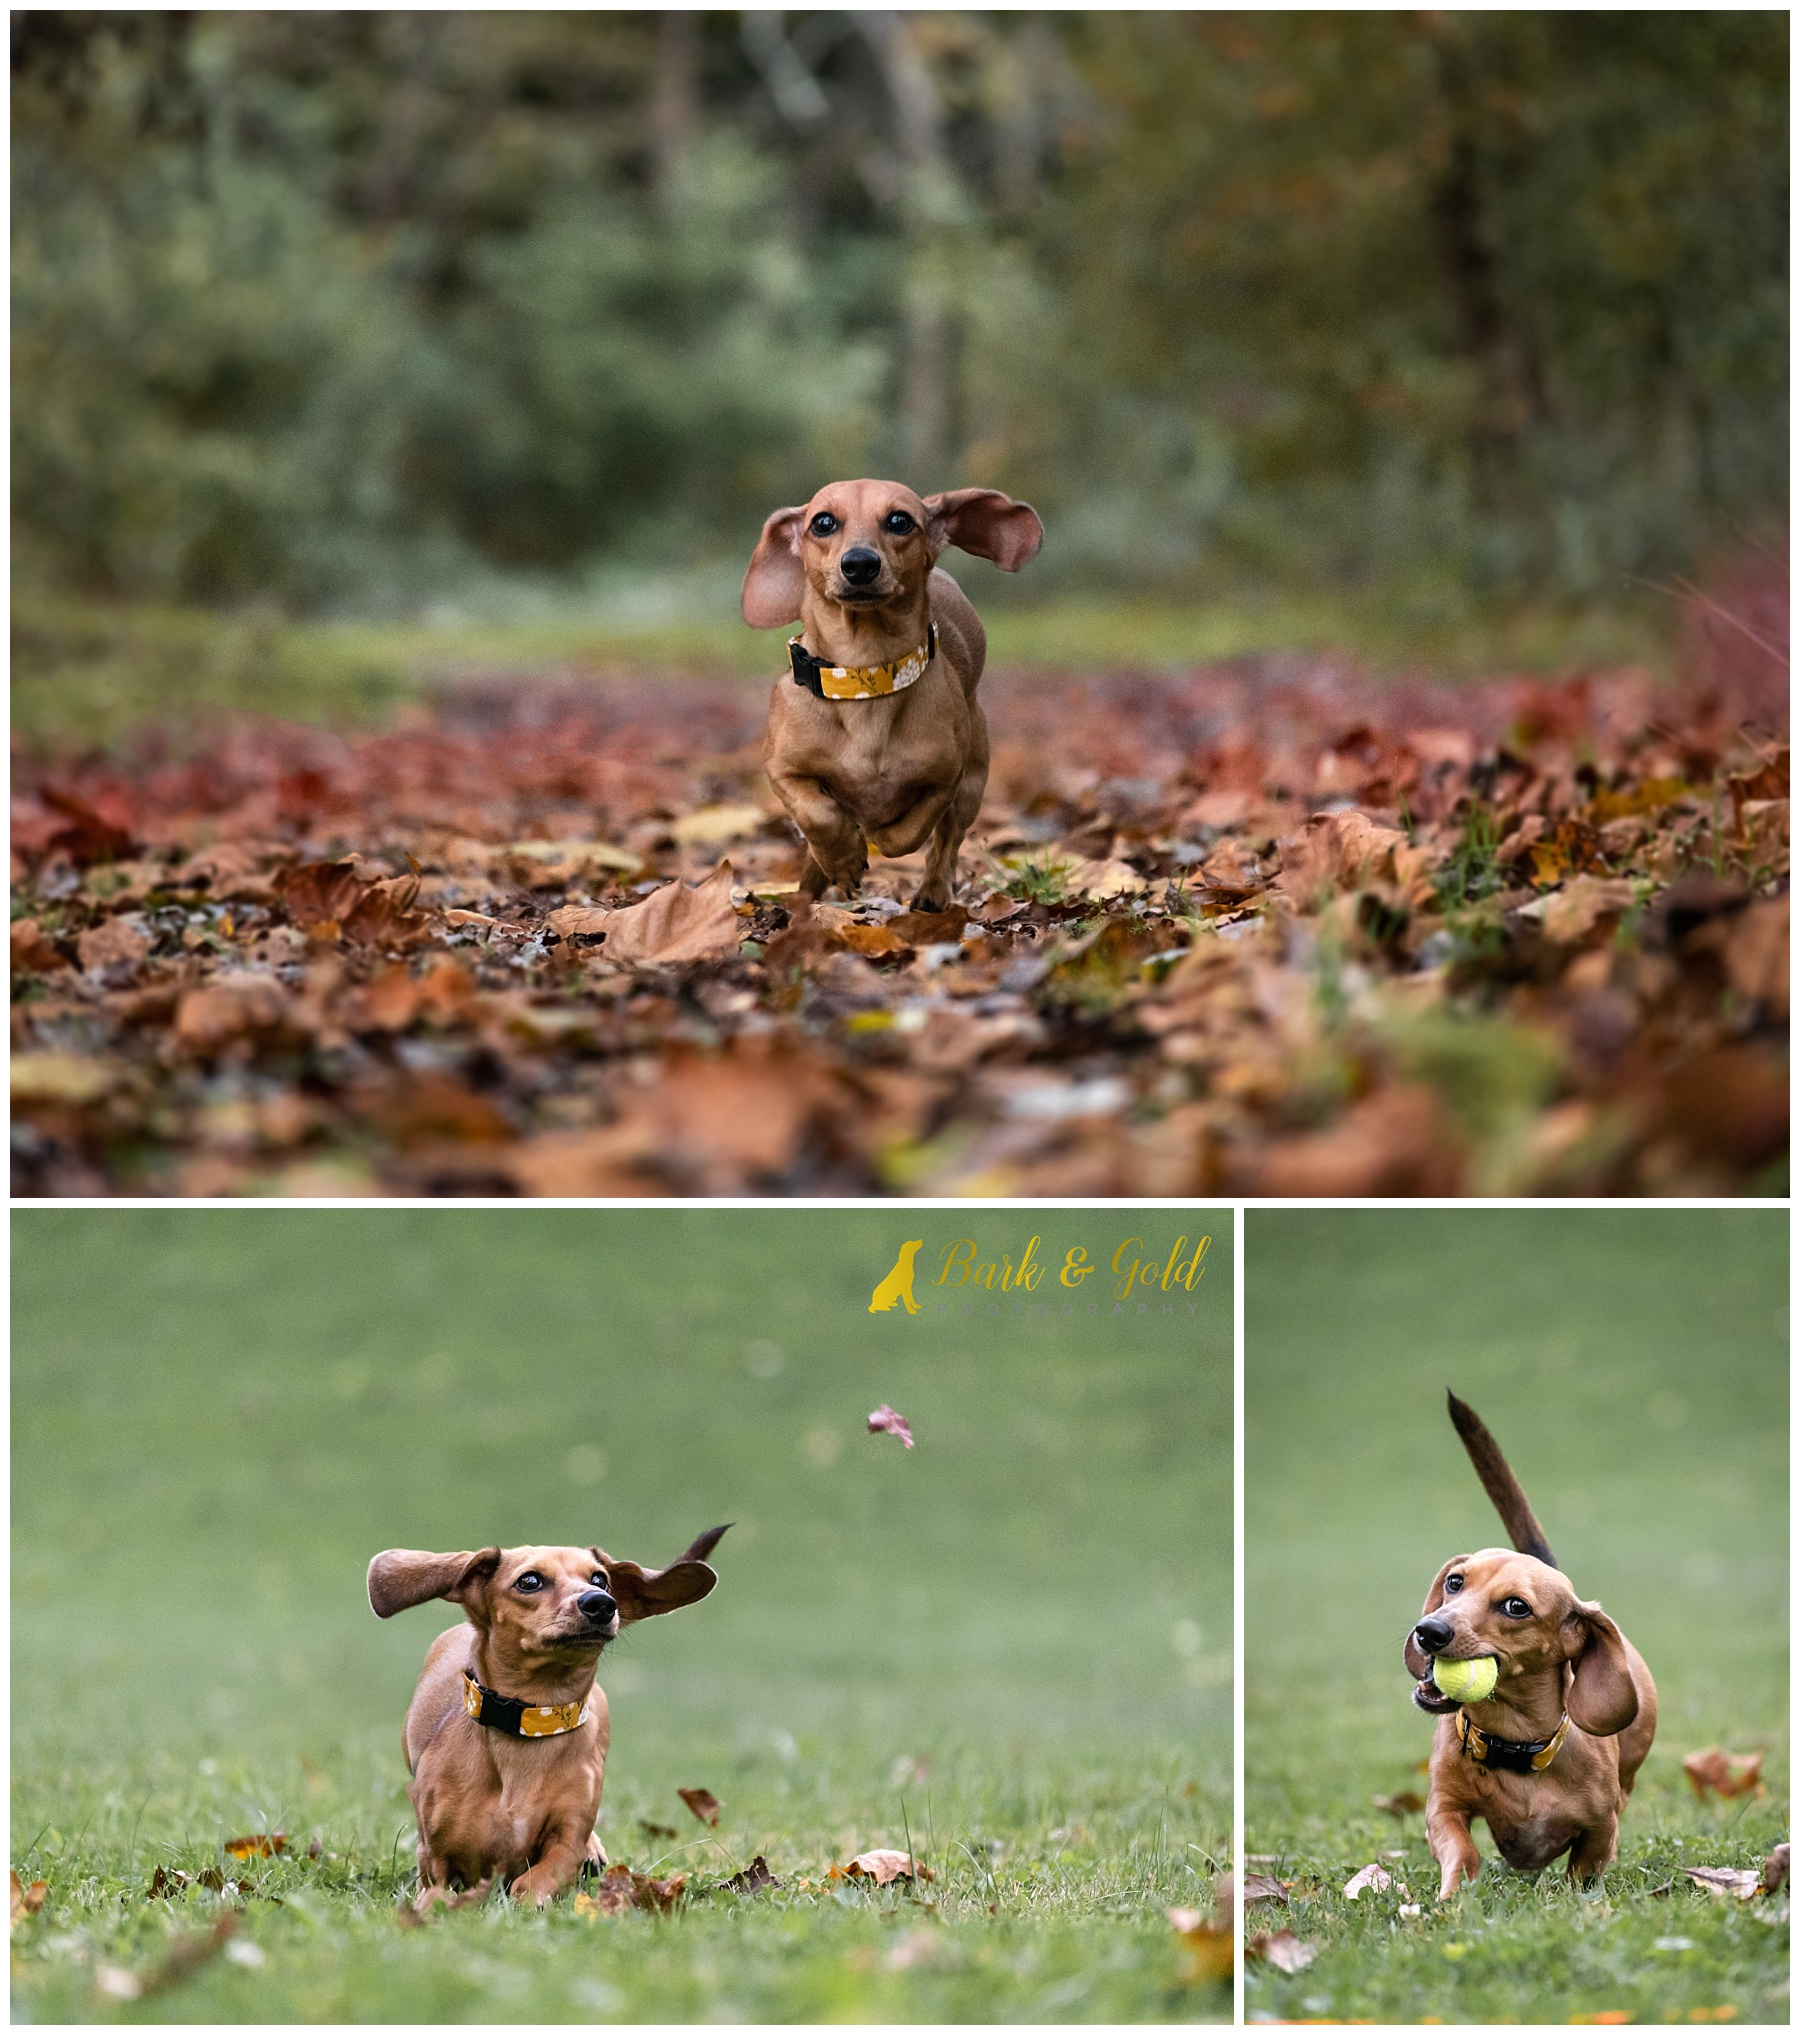 dachshund puppy running through leaves in Brady's Run Park in Beaver County